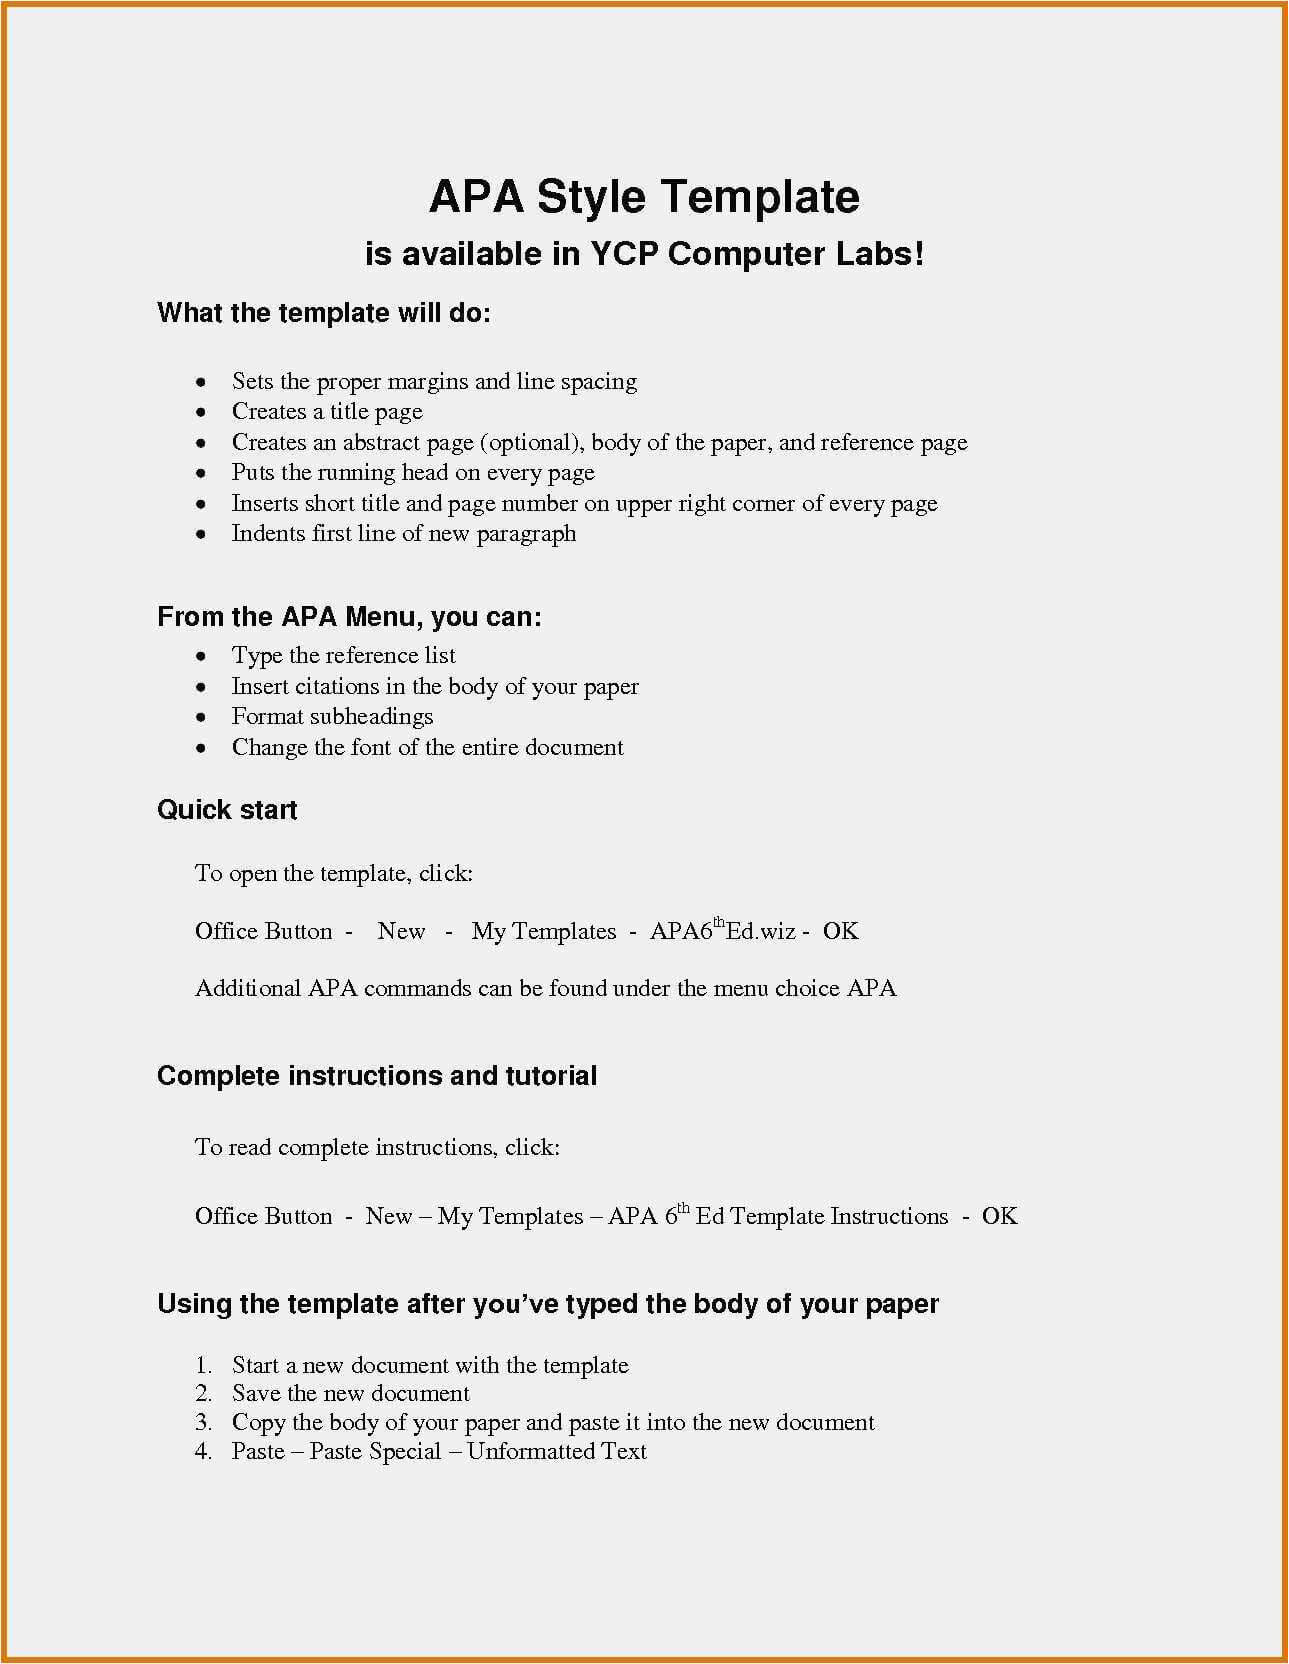 024 Apa Reference Page Template Word Style Paper Format With Apa Research Paper Template Word 2010